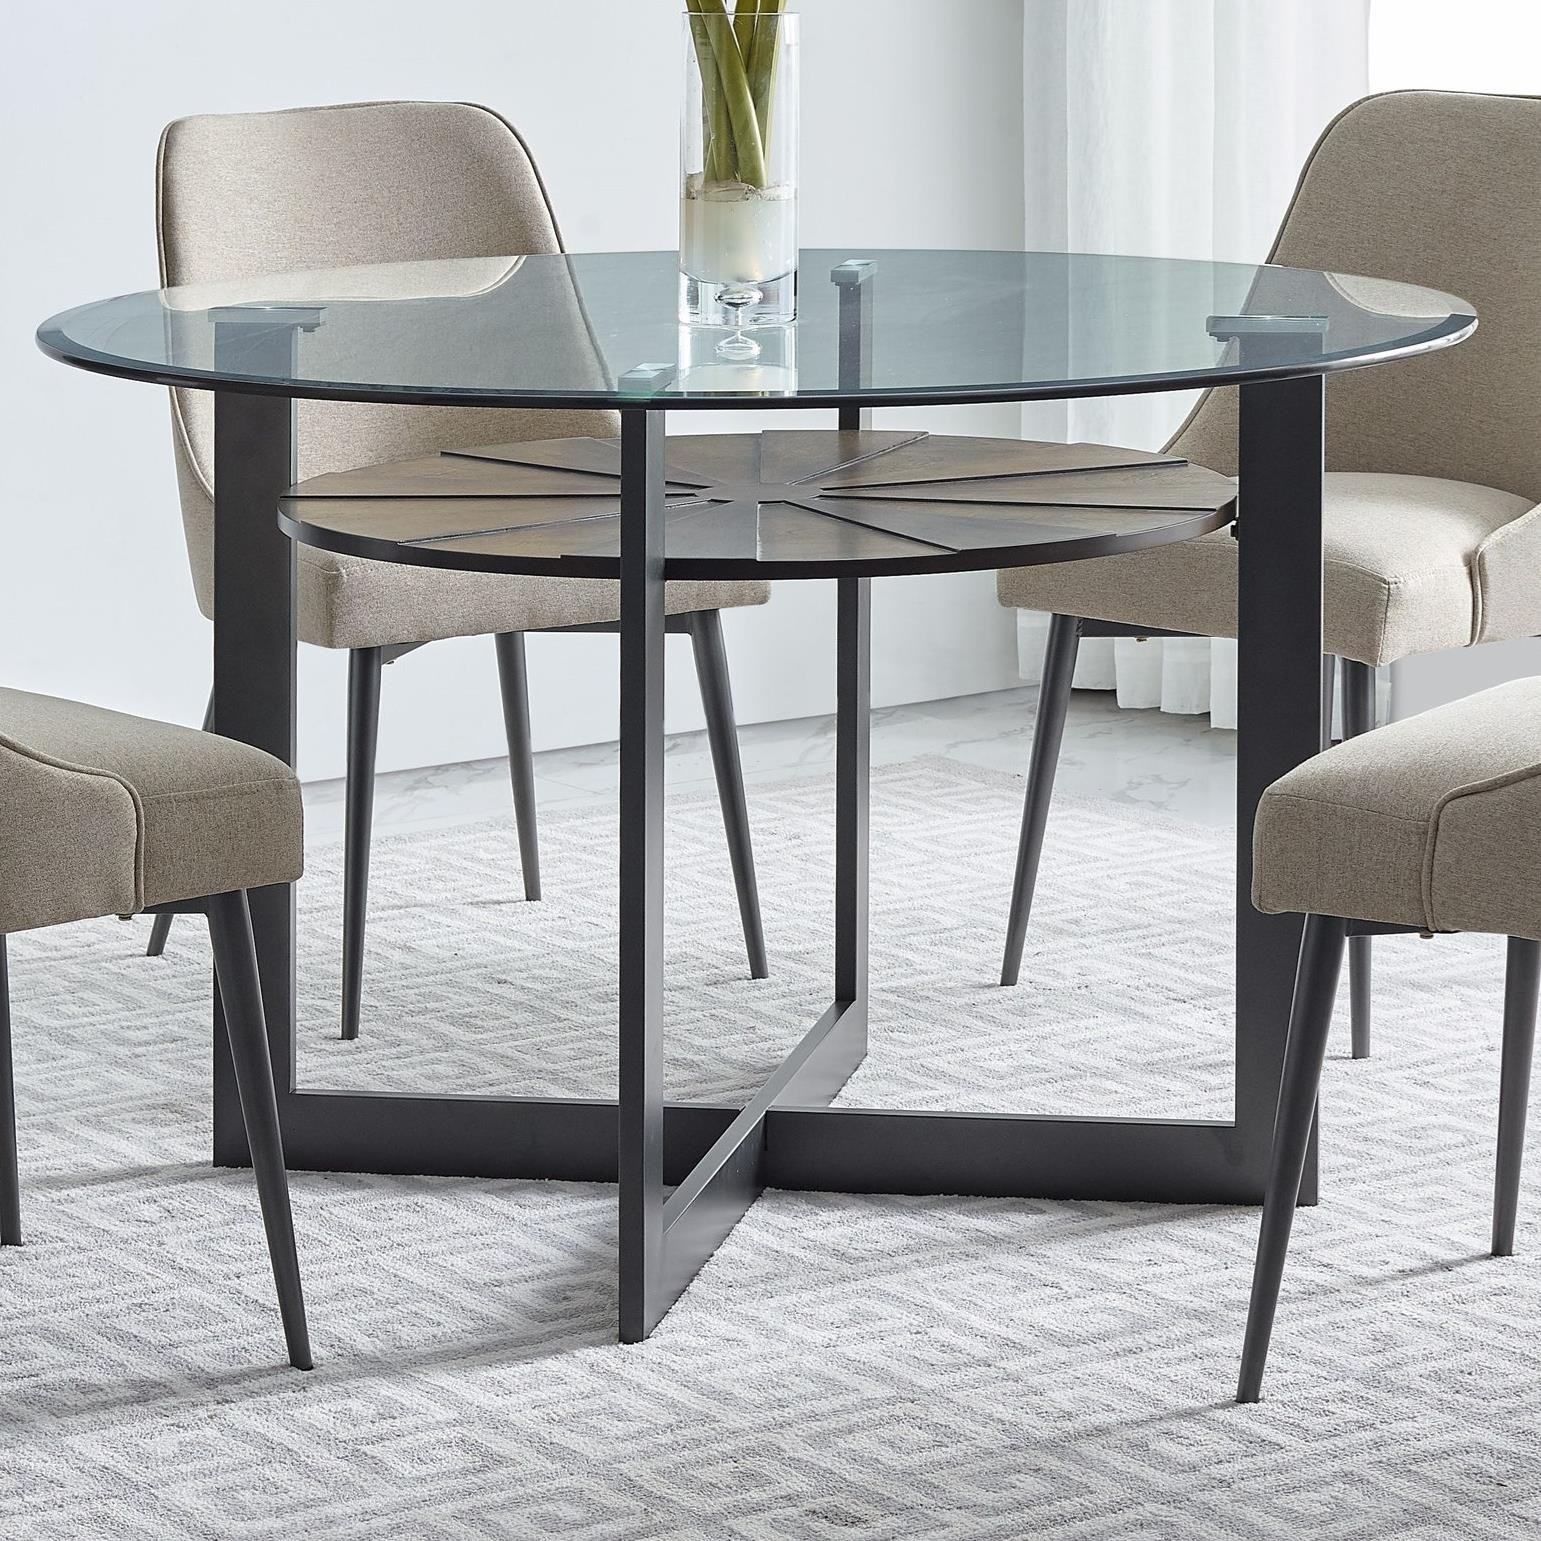 olson ss round glass dining table